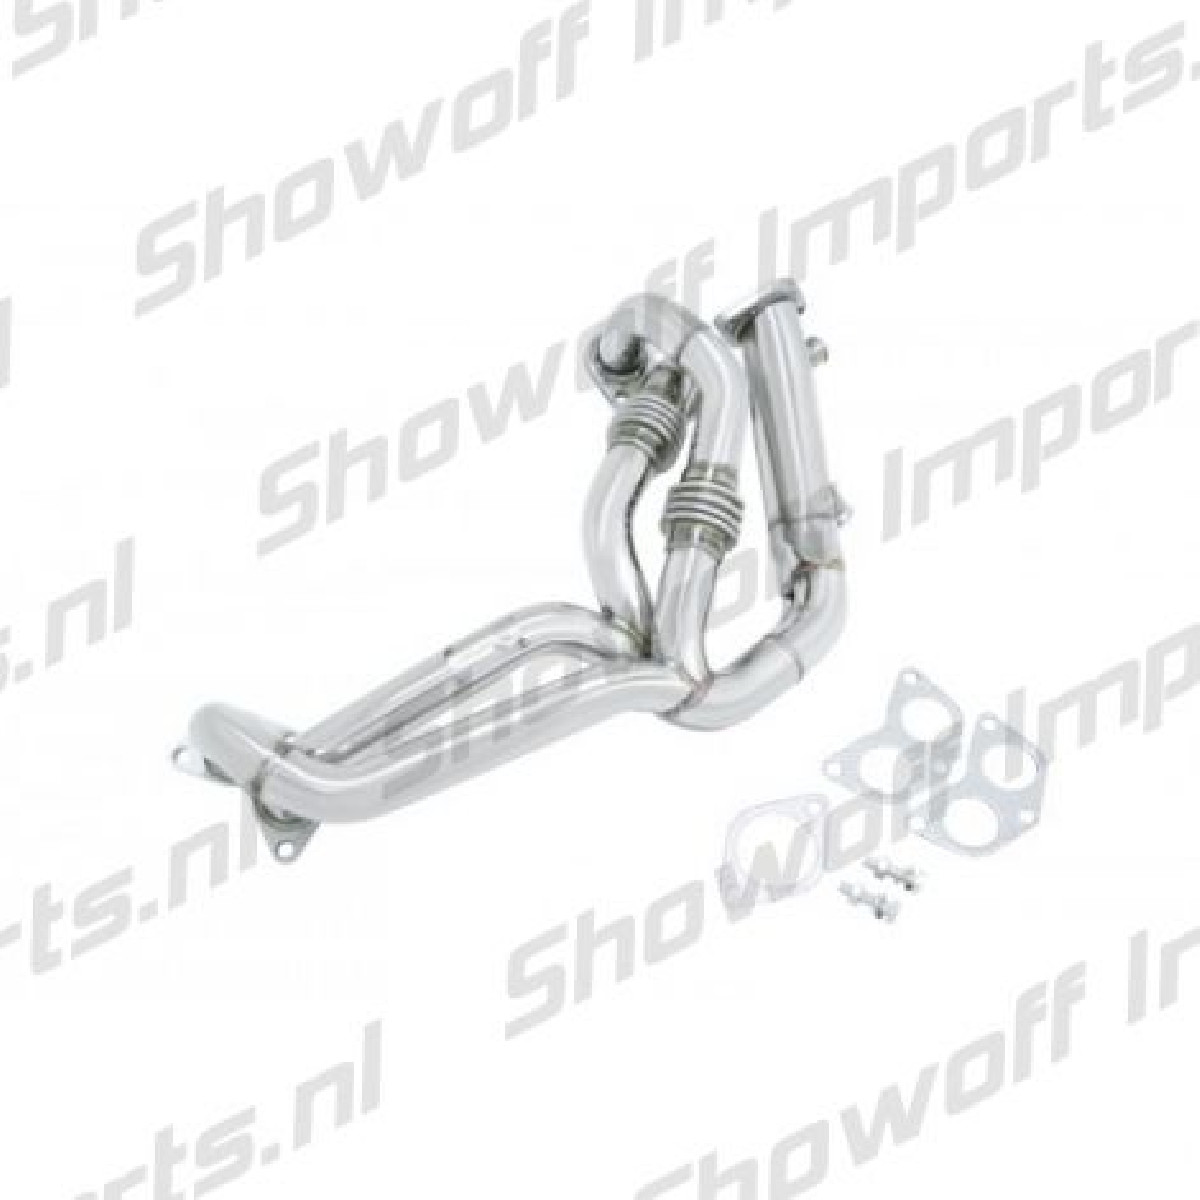 Subaru BRZ Manzo Stainless Steel Header De-Cat